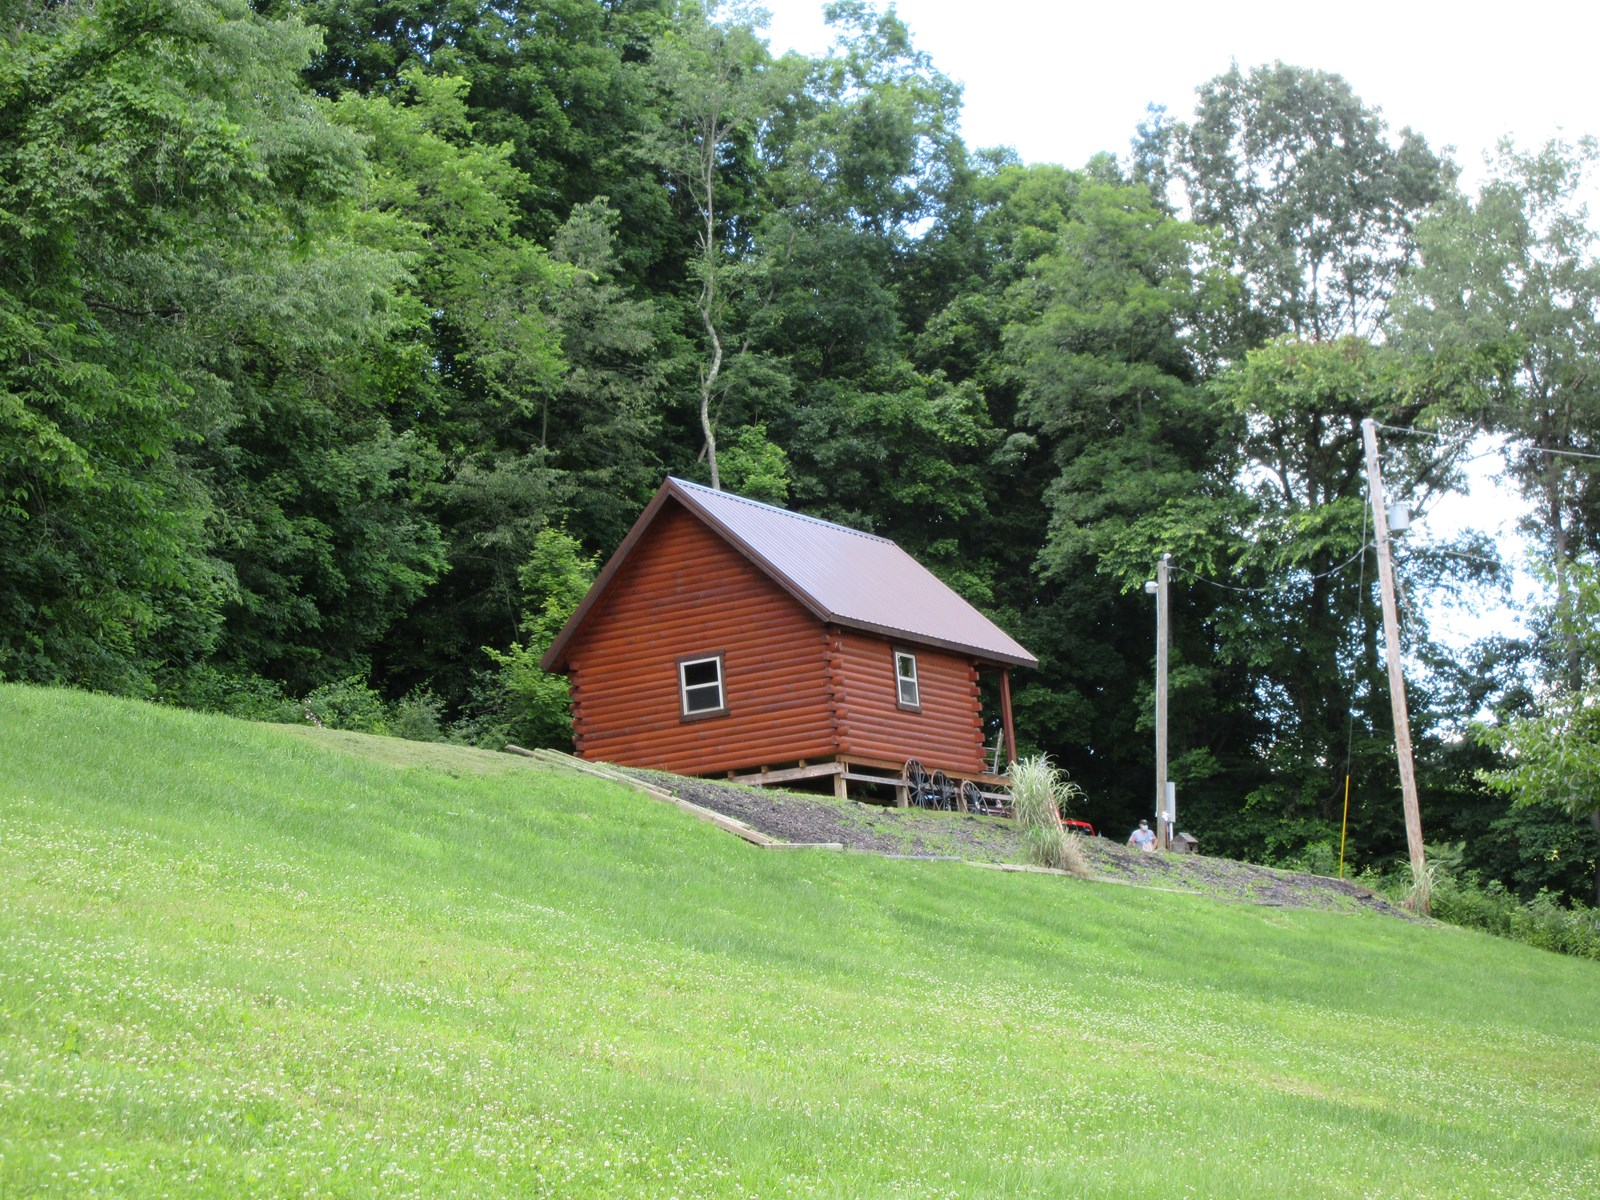 Eastern Ohio Log Cabin Retreat and Hunting Land